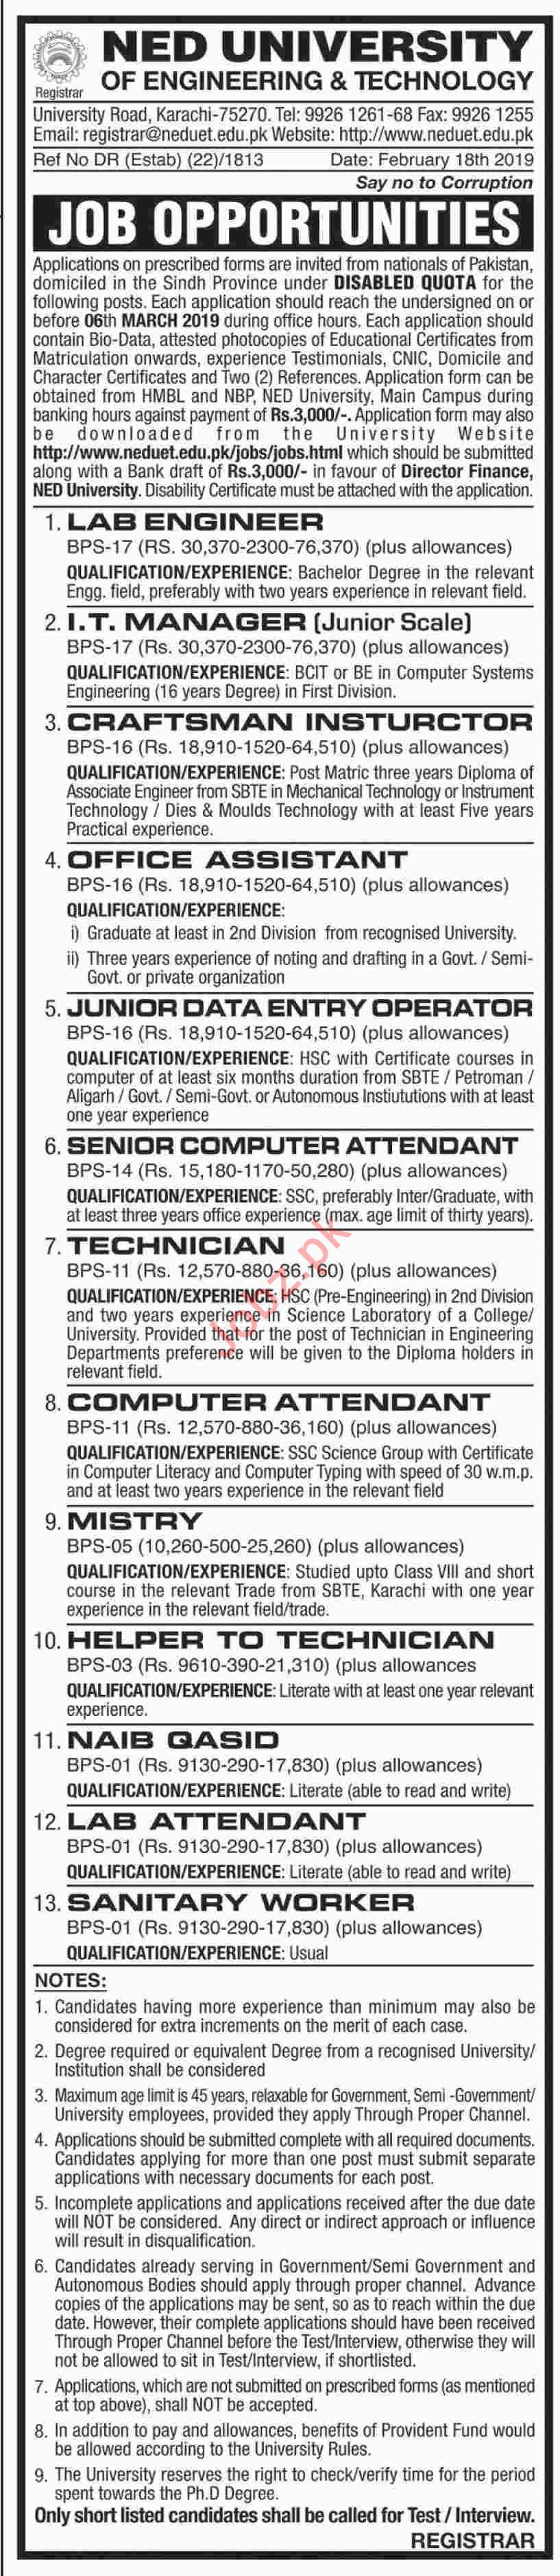 NED University Jobs 2019 for Lab Engineer & IT Manager